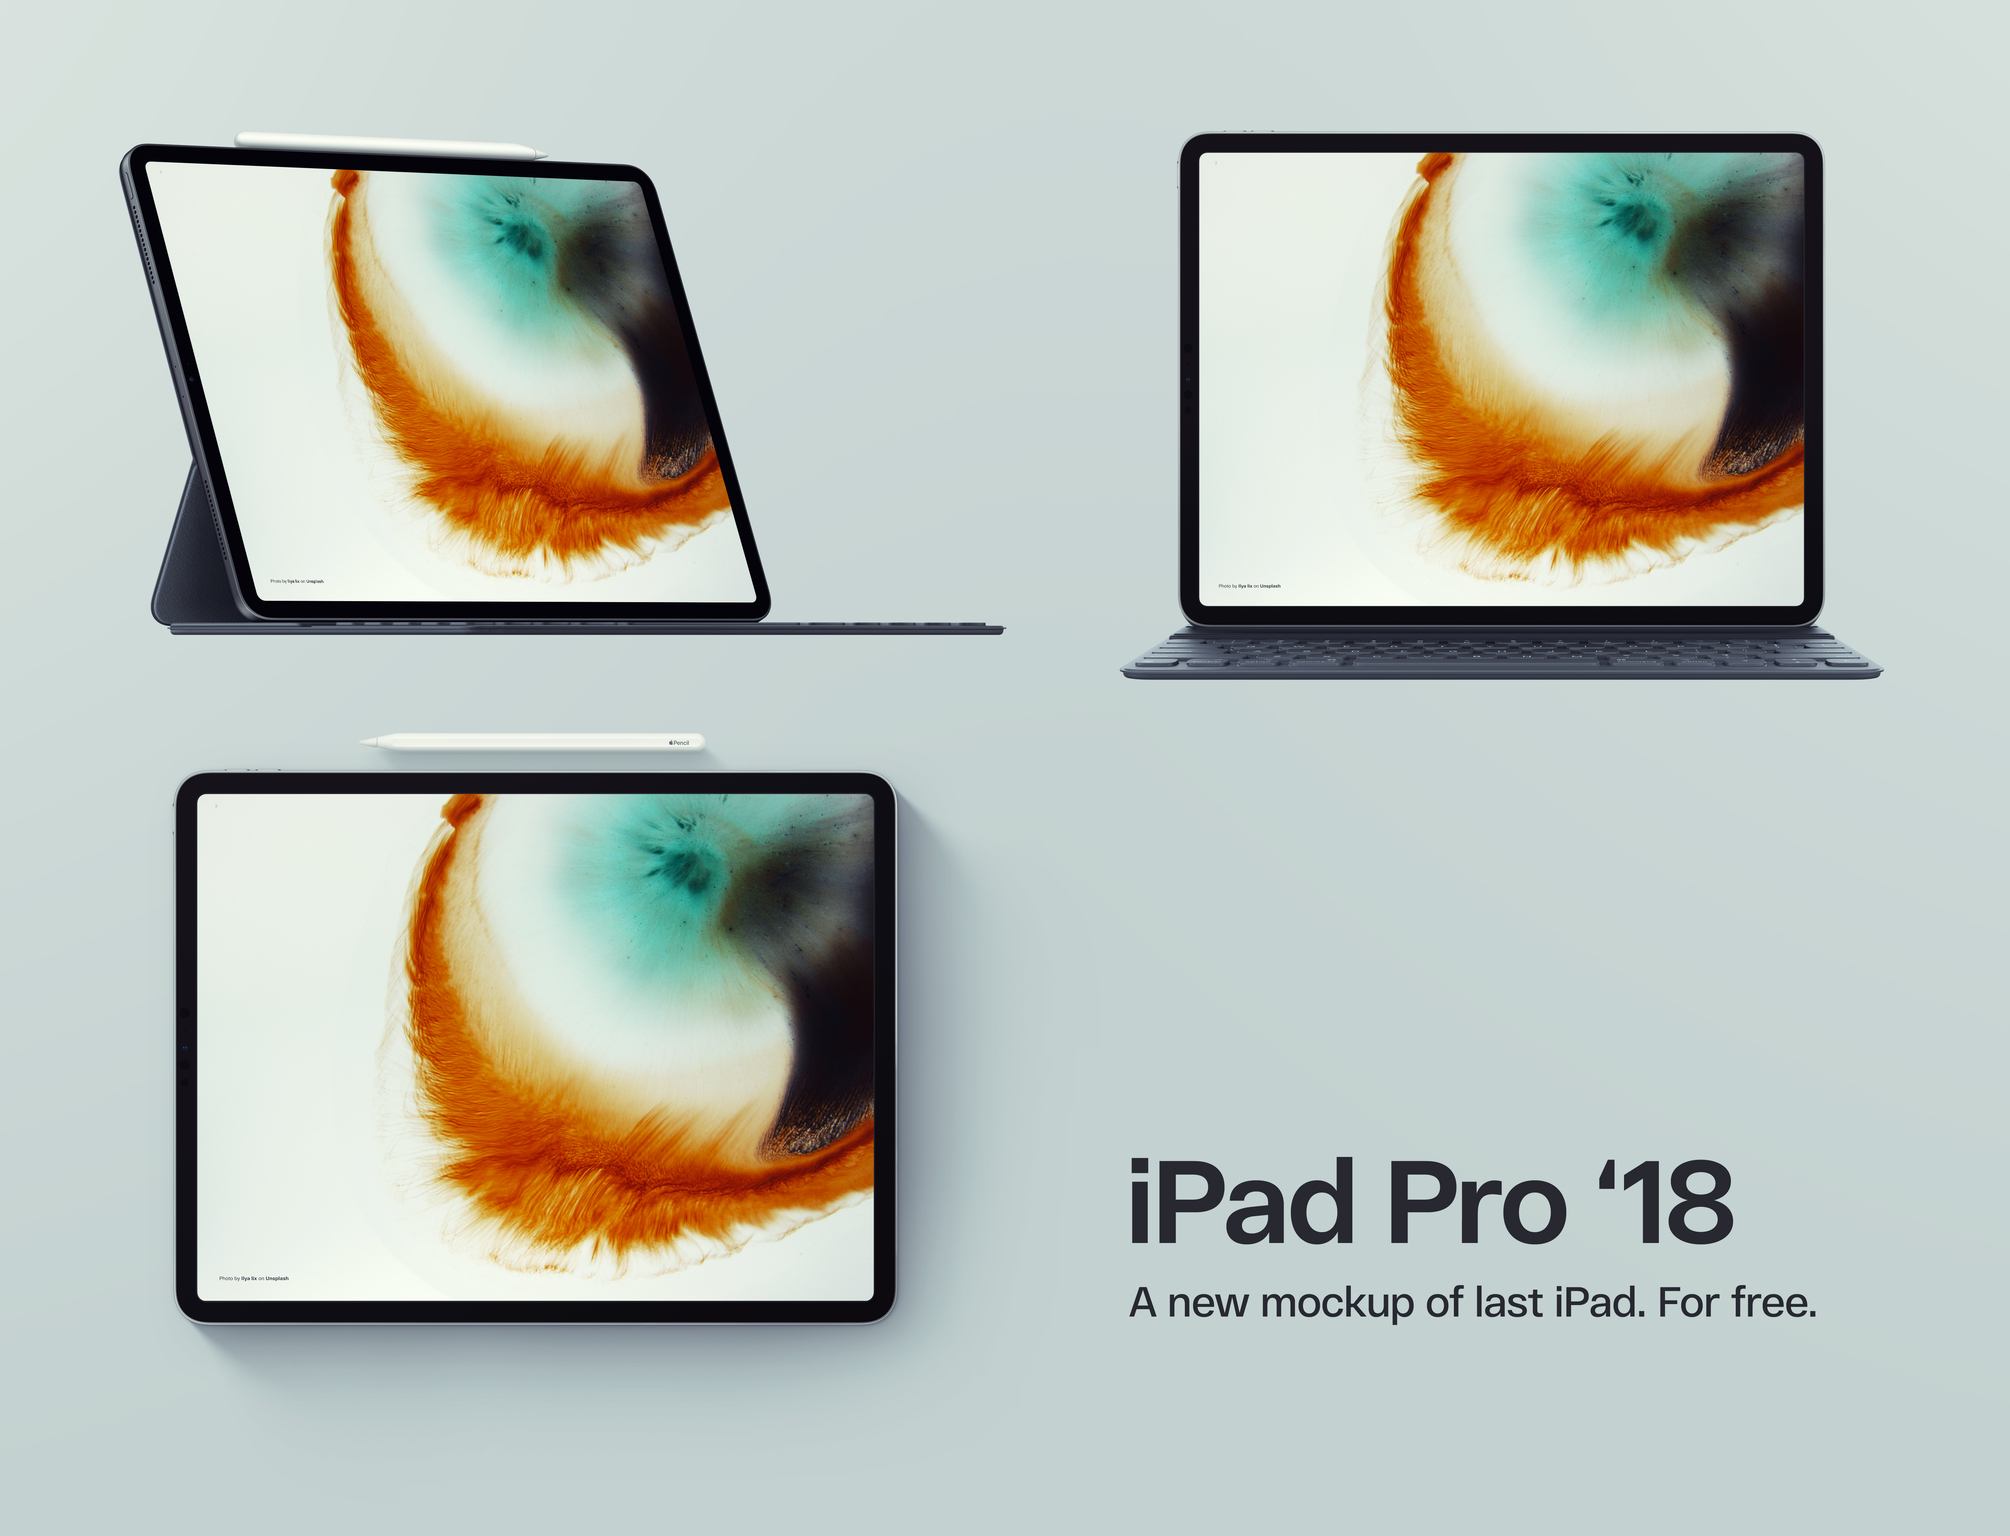 Ipad Pro 2018 Free Psd Mockups - 3 iPad Pro 2018 mockups available to download for free in Photoshop PSD format. Freebie designed by Arlekino